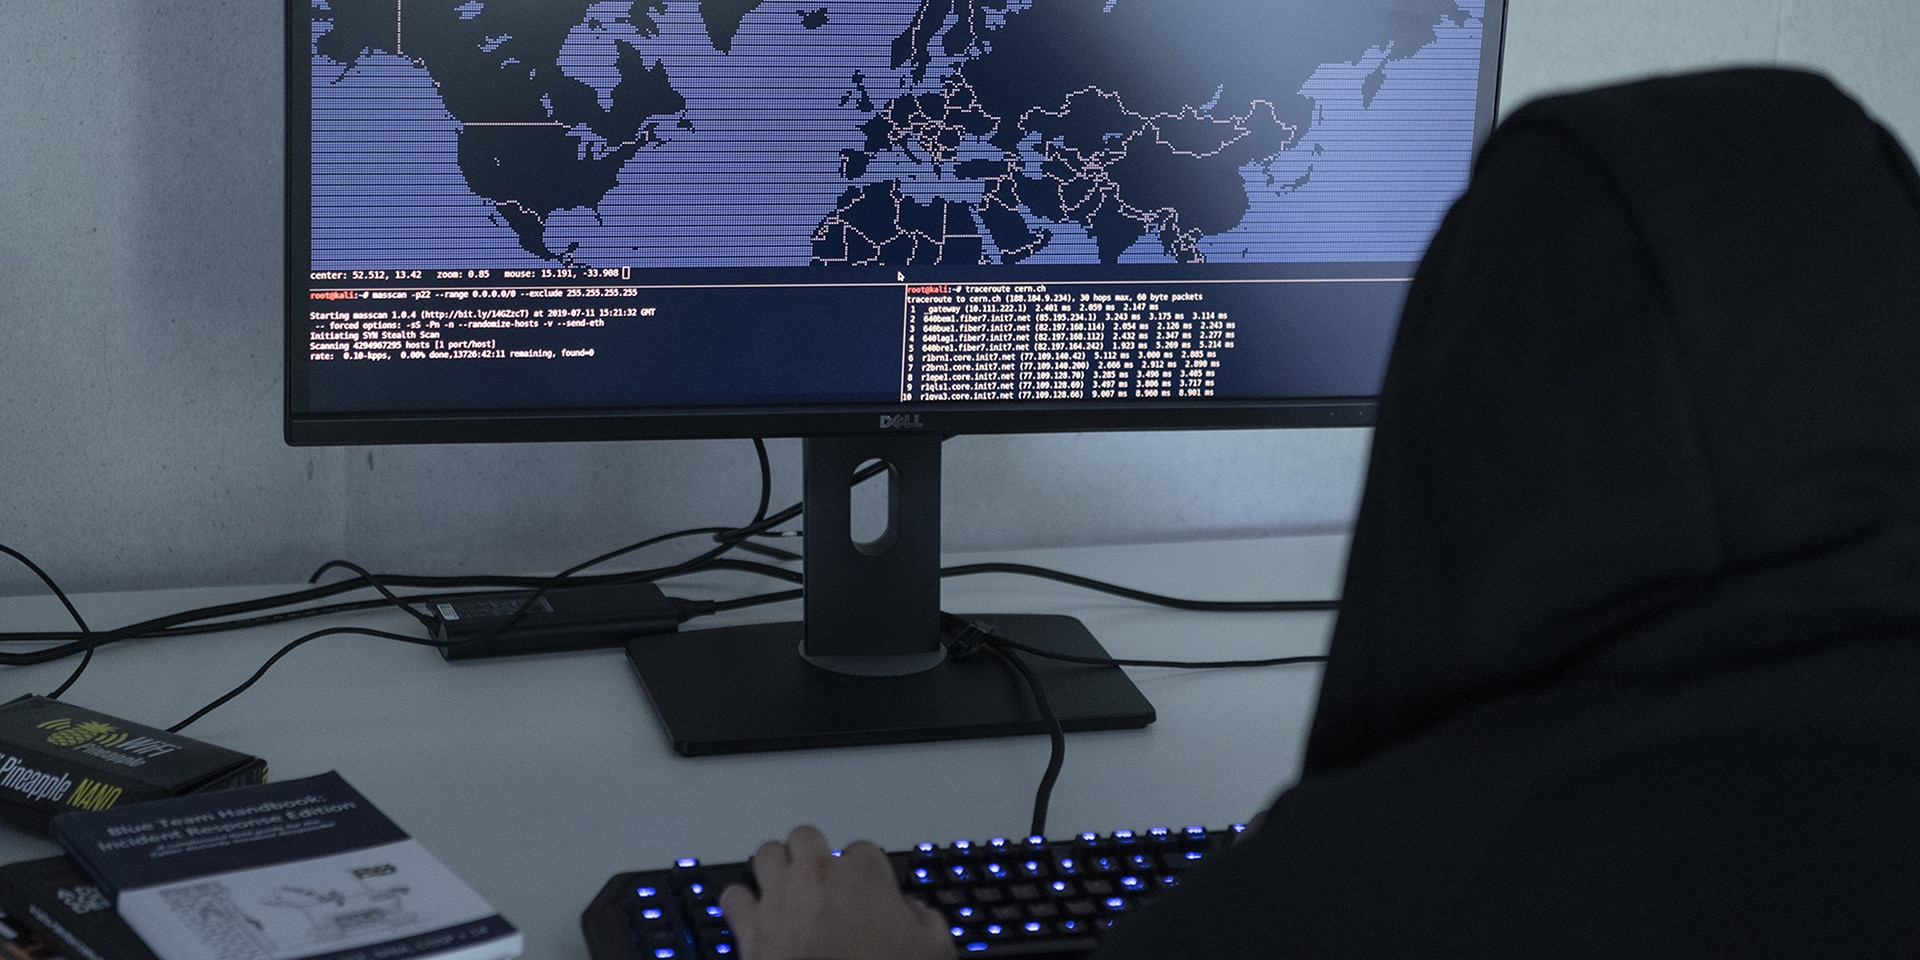 To symbolise cybercrime, a man in a hooded sweatshirt sits in front of a computer displaying a map of the world and modifies programming codes.